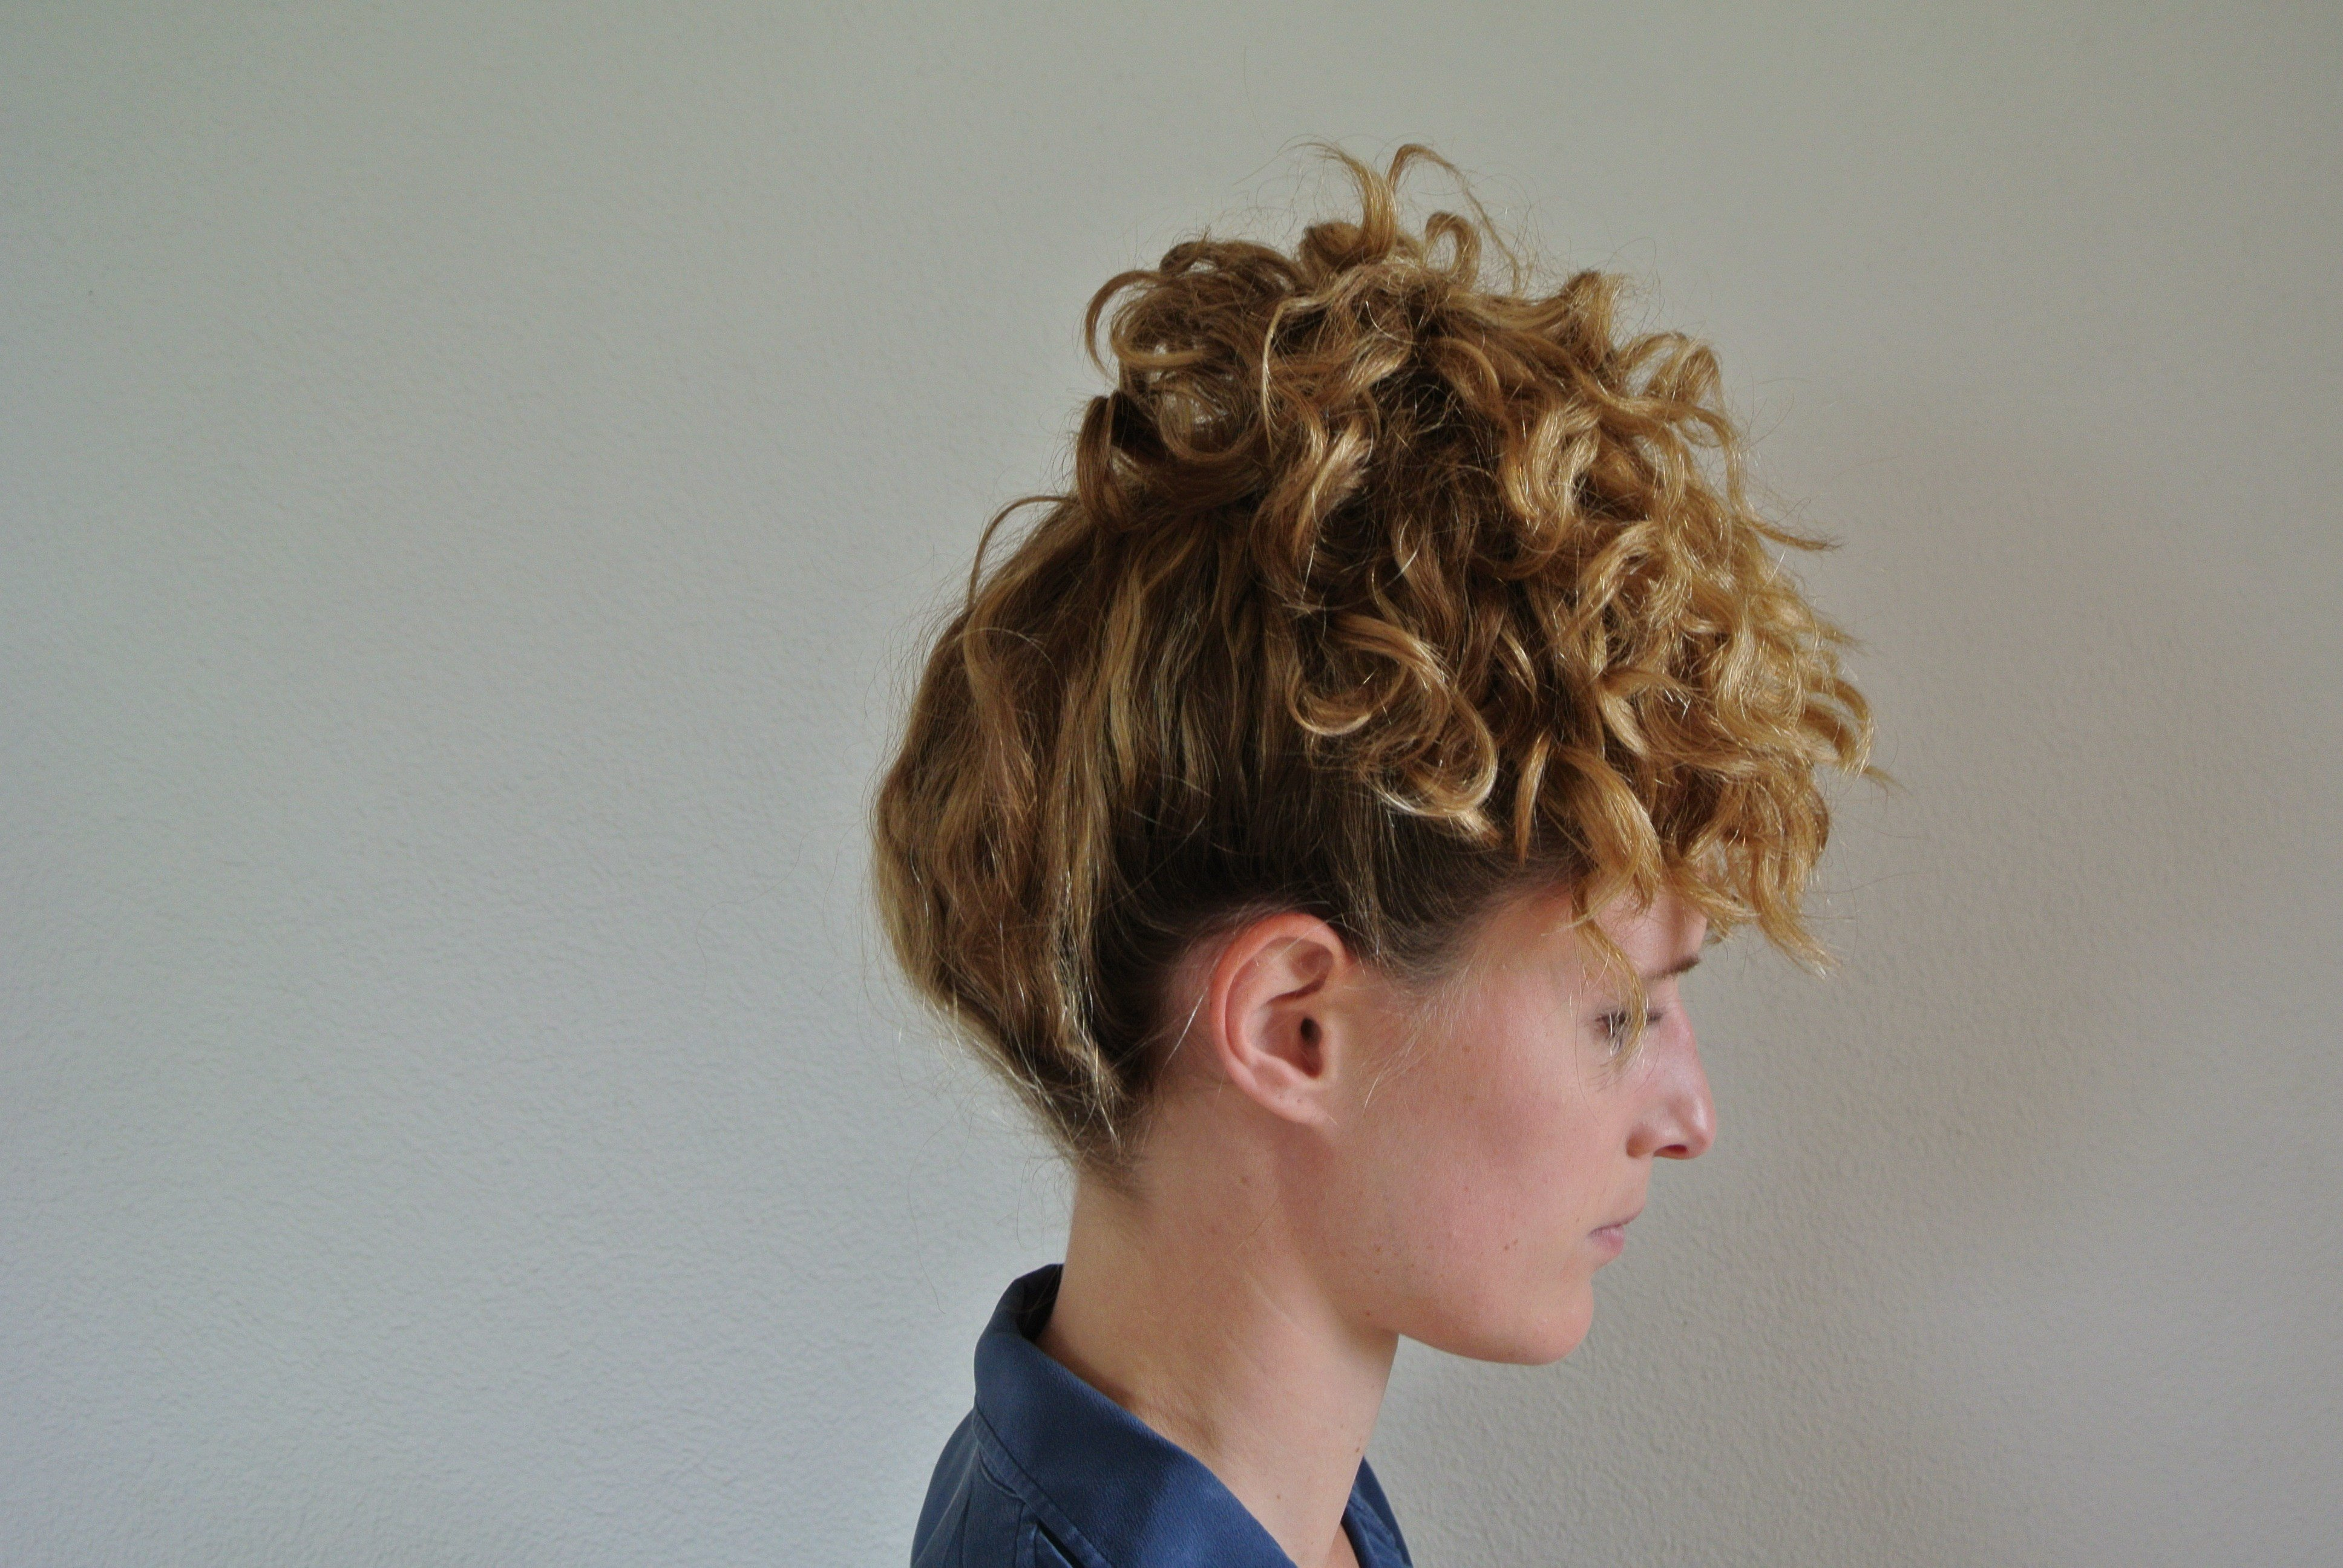 New How To Get Perfect Second Day Curls Justcurly Com Ideas With Pictures